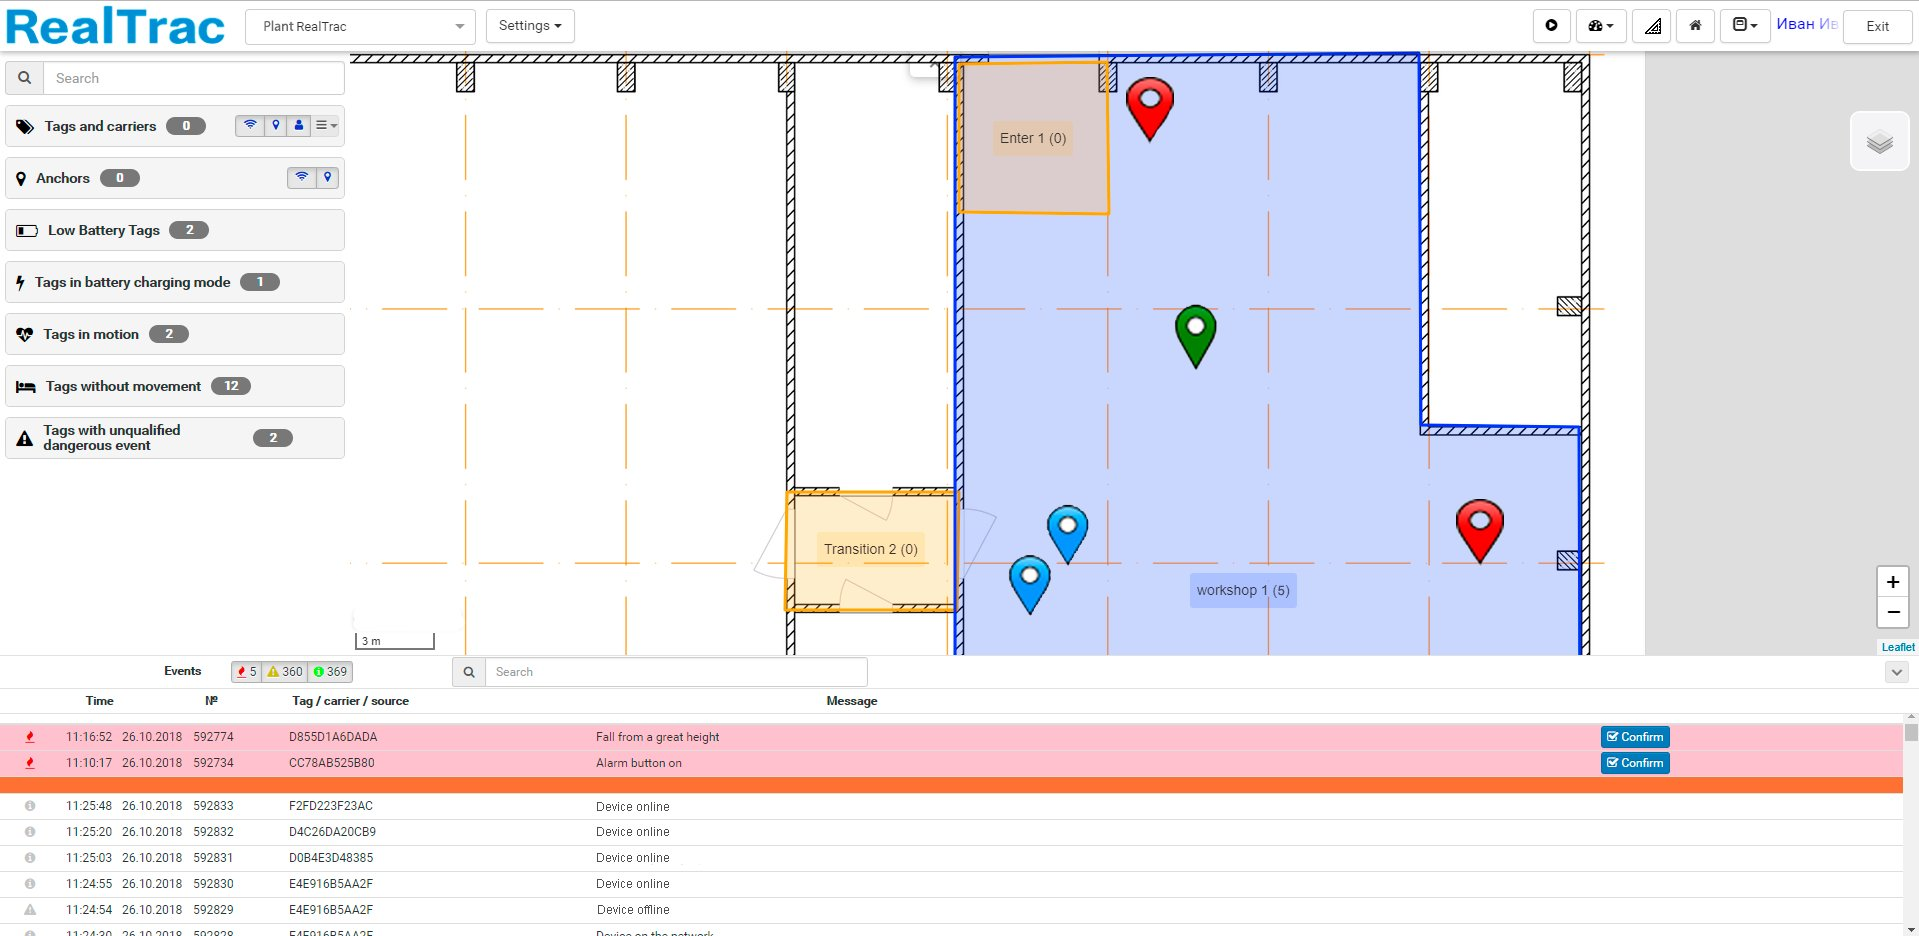 RealTrac Plant indoor positioning